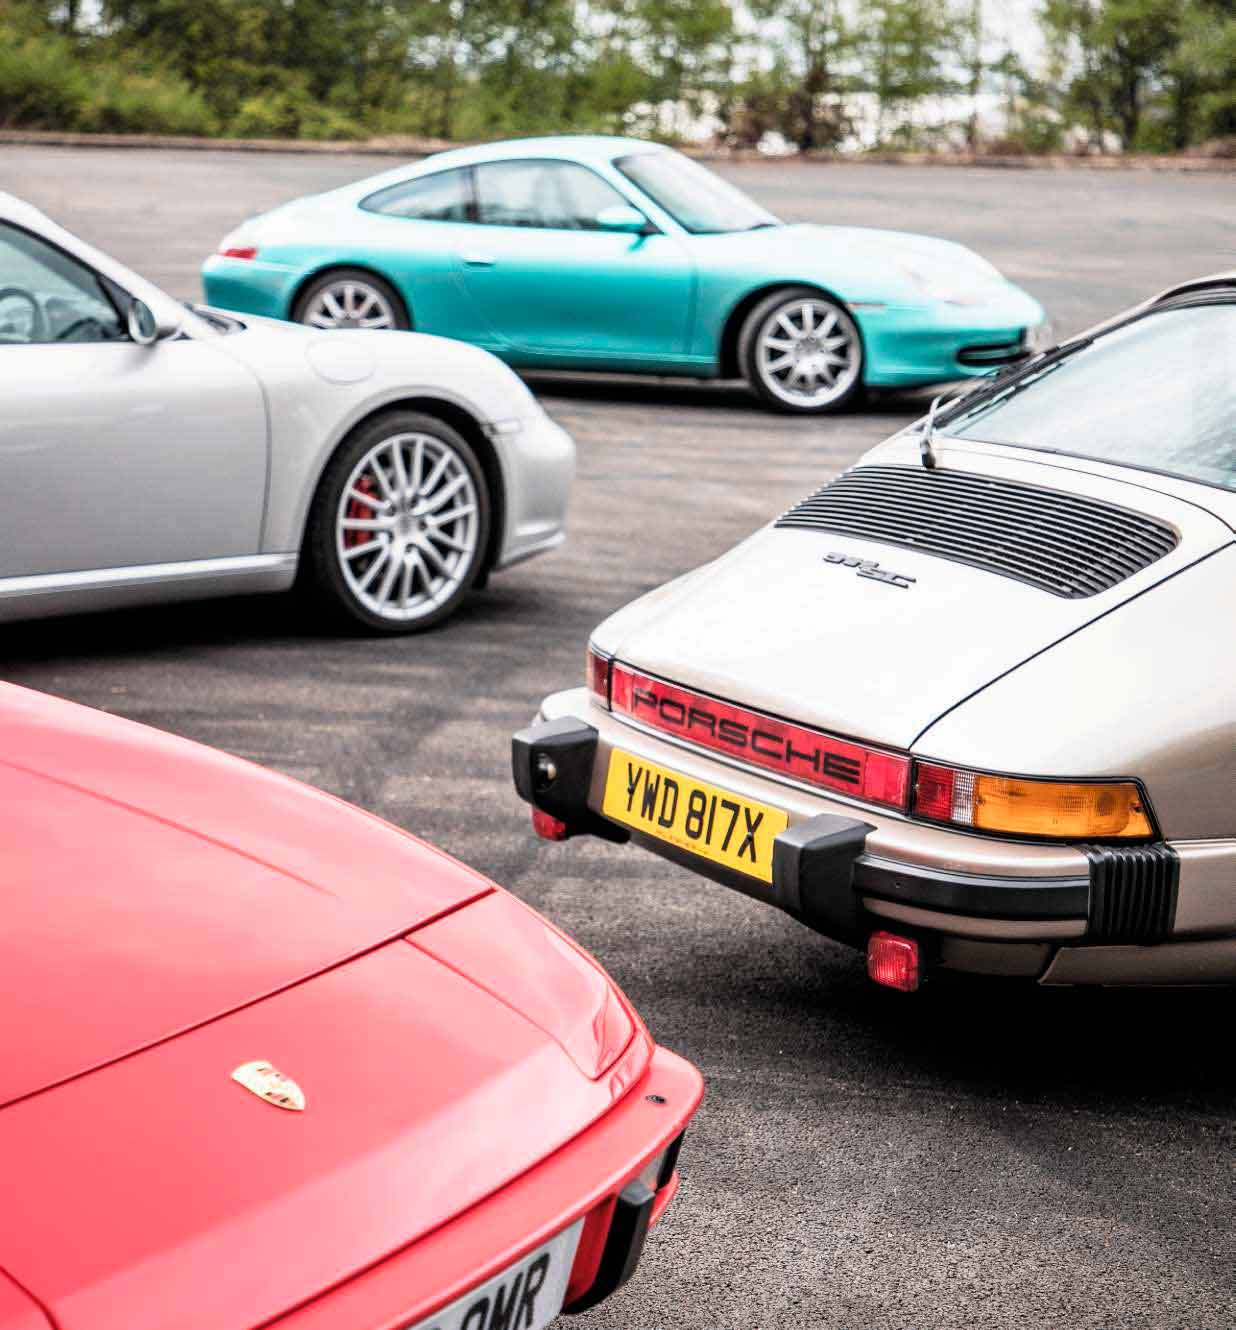 Porsches to buy now - 1982 911 SC G-Series, 1986 924S, 1988 928S4, 1990 944S2 Cabriolet, 1999 911 Carrera 2 996 and 2007 Cayman S 987